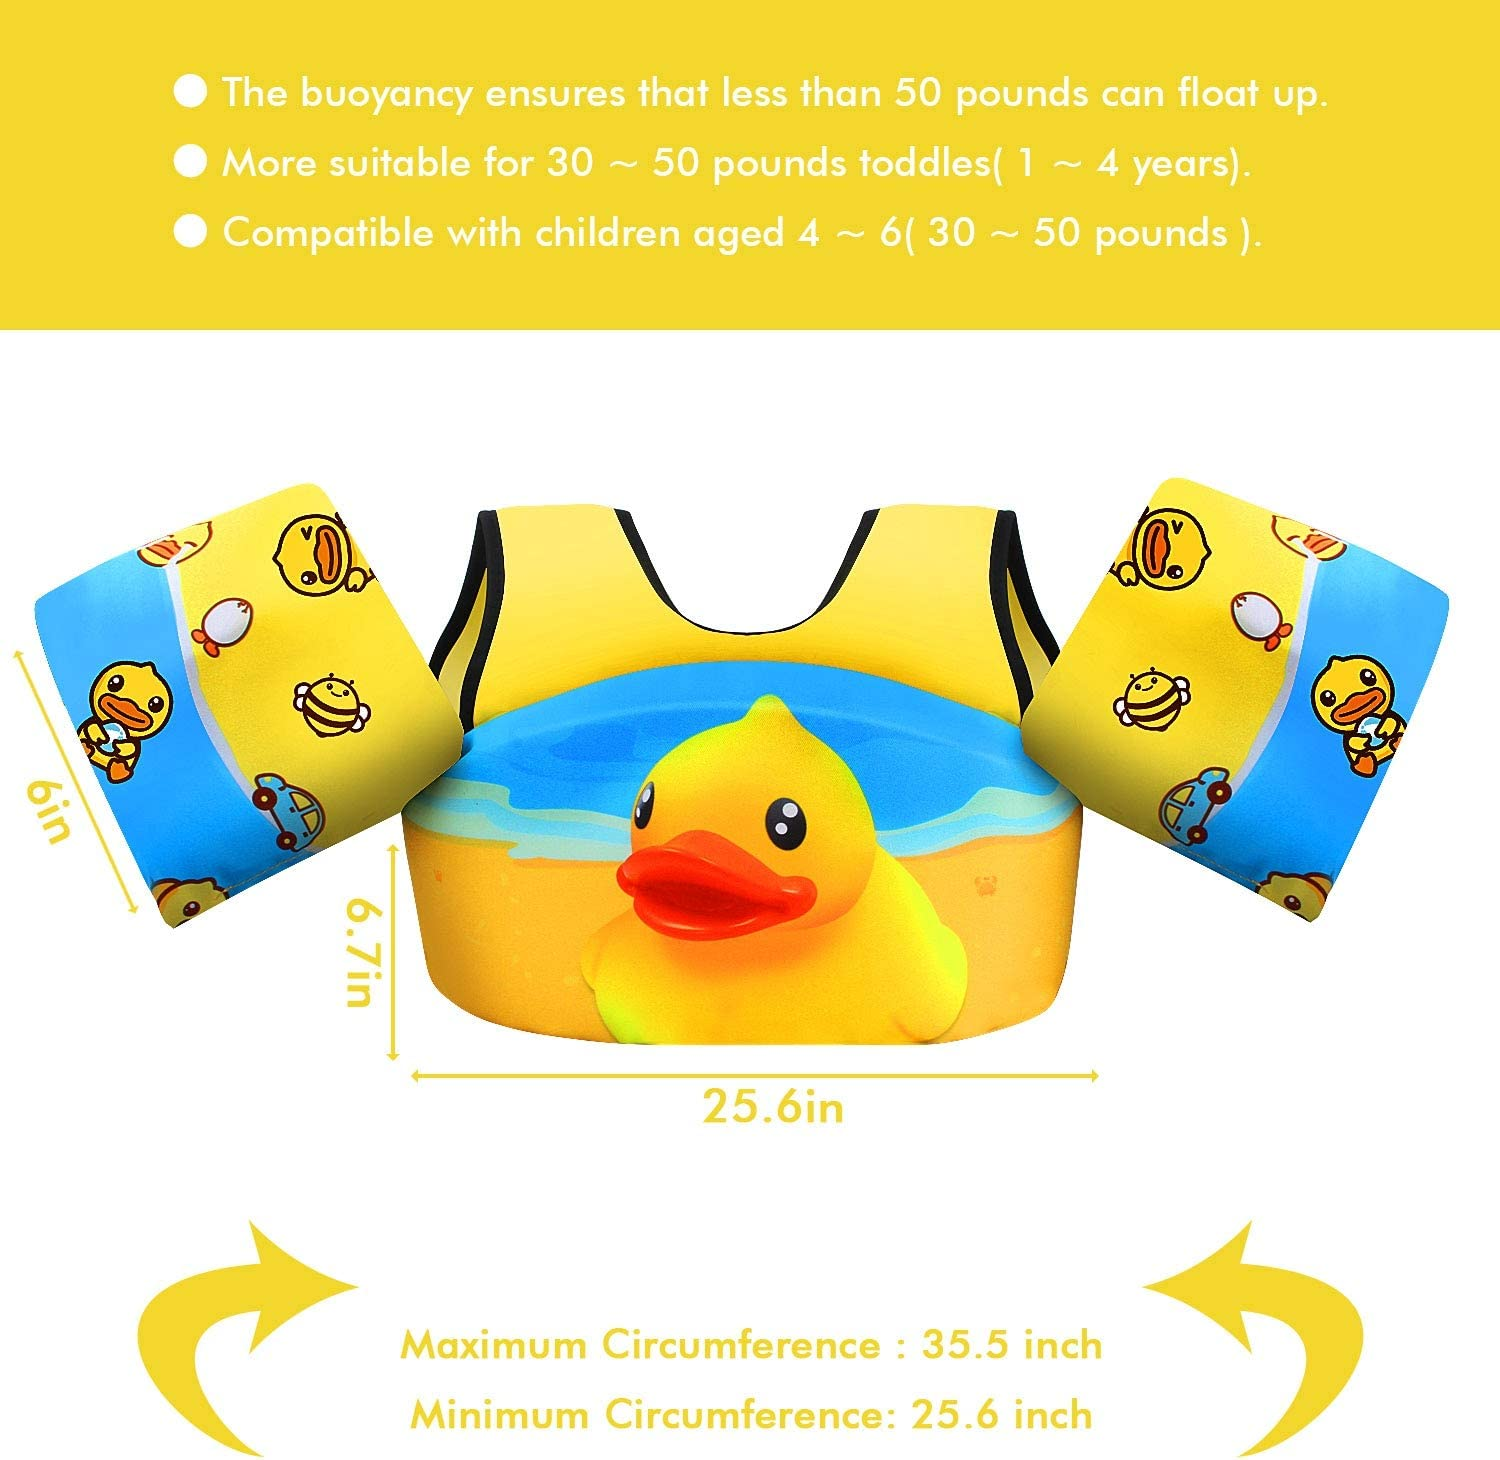 Chriffer Kids Swim Vest for 30-50 Pounds Boys and Girls Toddler Floats with Shoulder Harness Arm Wings for 2,3,4,5,6,7 Years Old Baby Children Sea Beach Pool